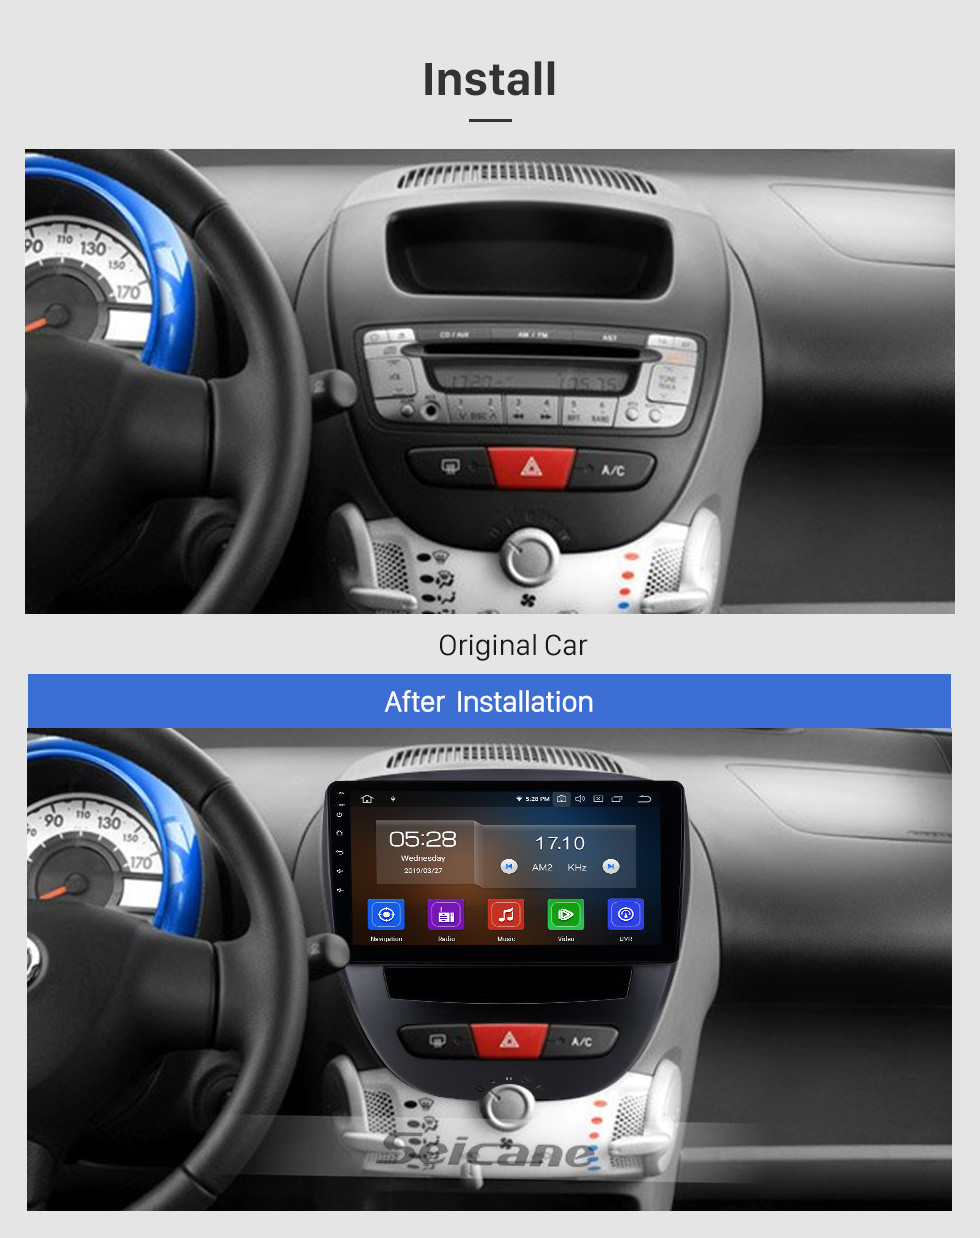 Seicane 10.1 inch Android 10.0 GPS Navigation Radio for 2005-2014 Peugeot 107 Bluetooth Wifi HD Touchscreen Carplay support DAB+ OBD2 Mirror Link